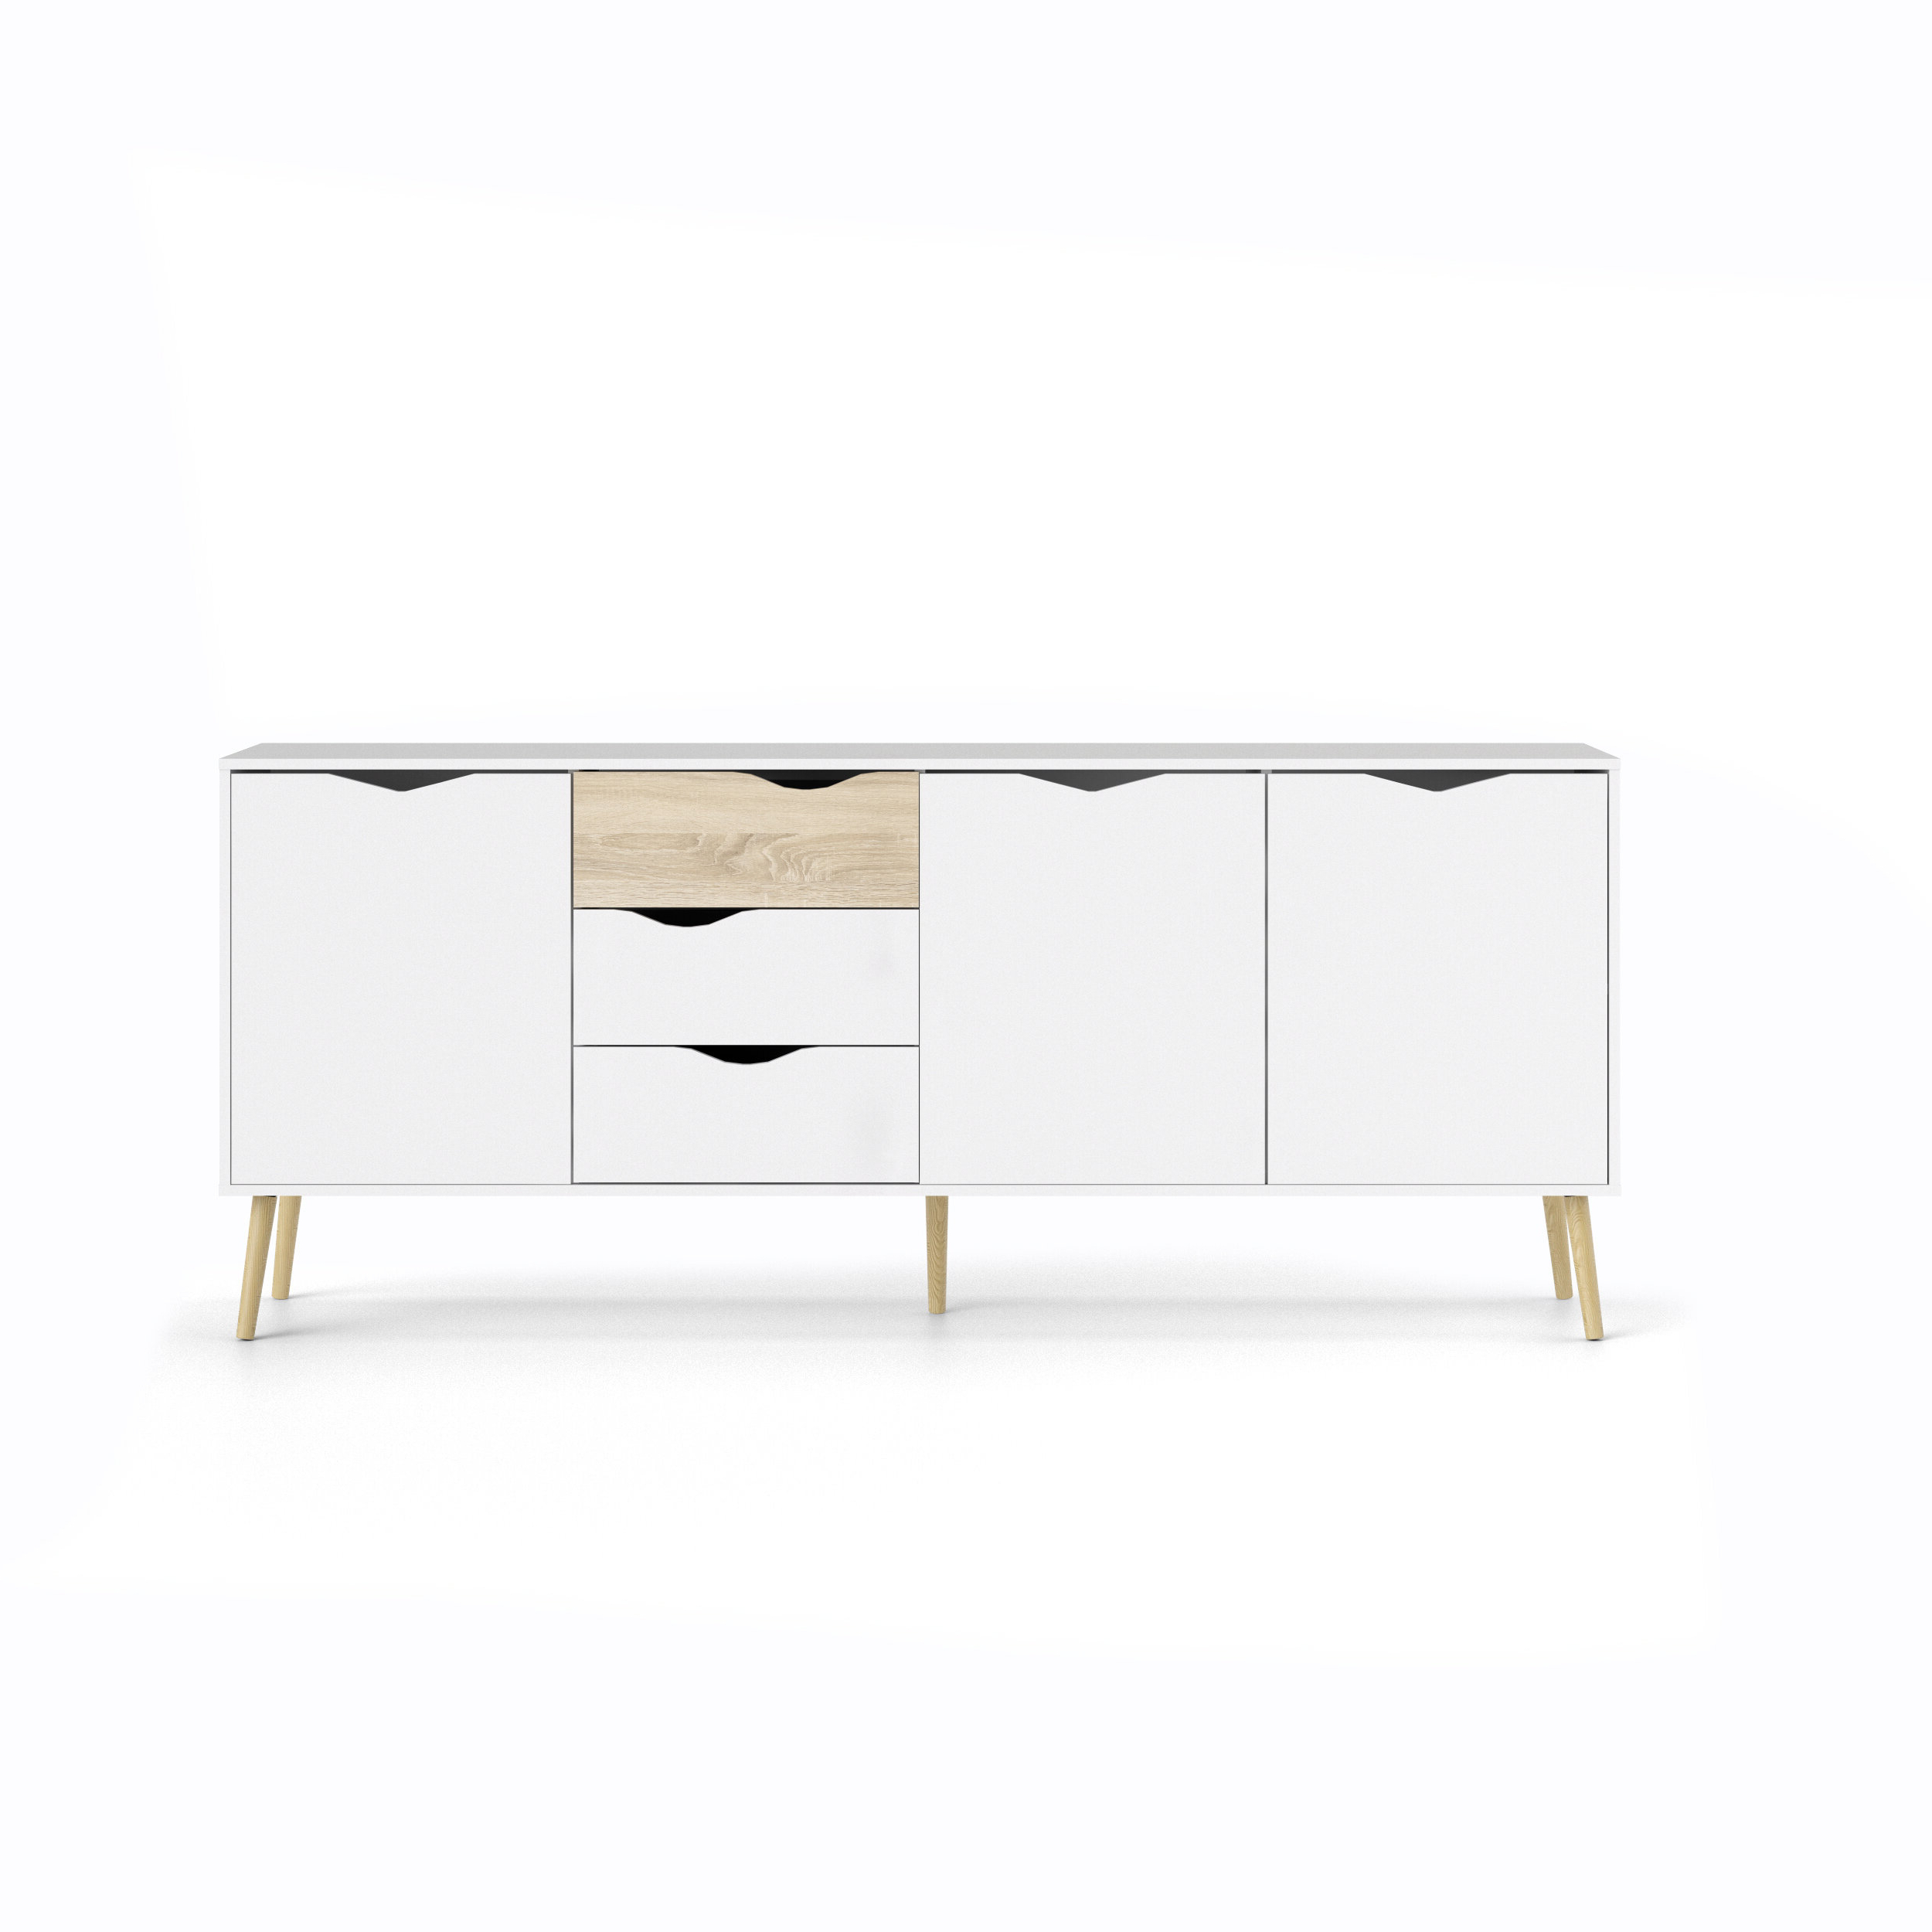 Dowler Buffet Table Throughout Most Popular Dowler 2 Drawer Sideboards (Gallery 5 of 20)